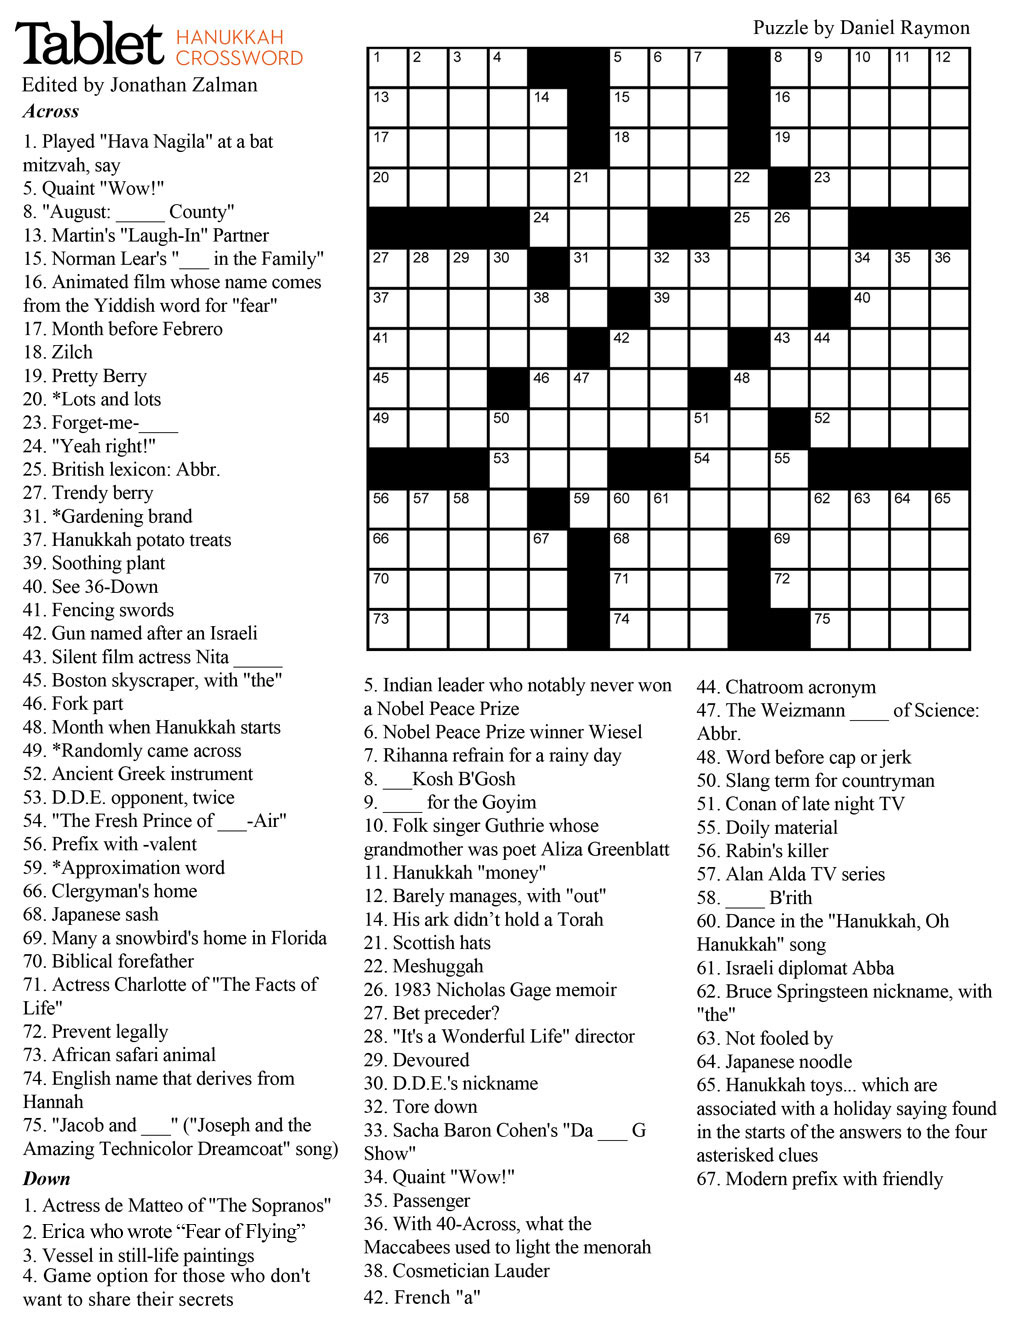 Wind Down With Our Hanukkah Crossword Puzzle! – Tablet Magazine - New York Times Daily Crossword Puzzle Printable